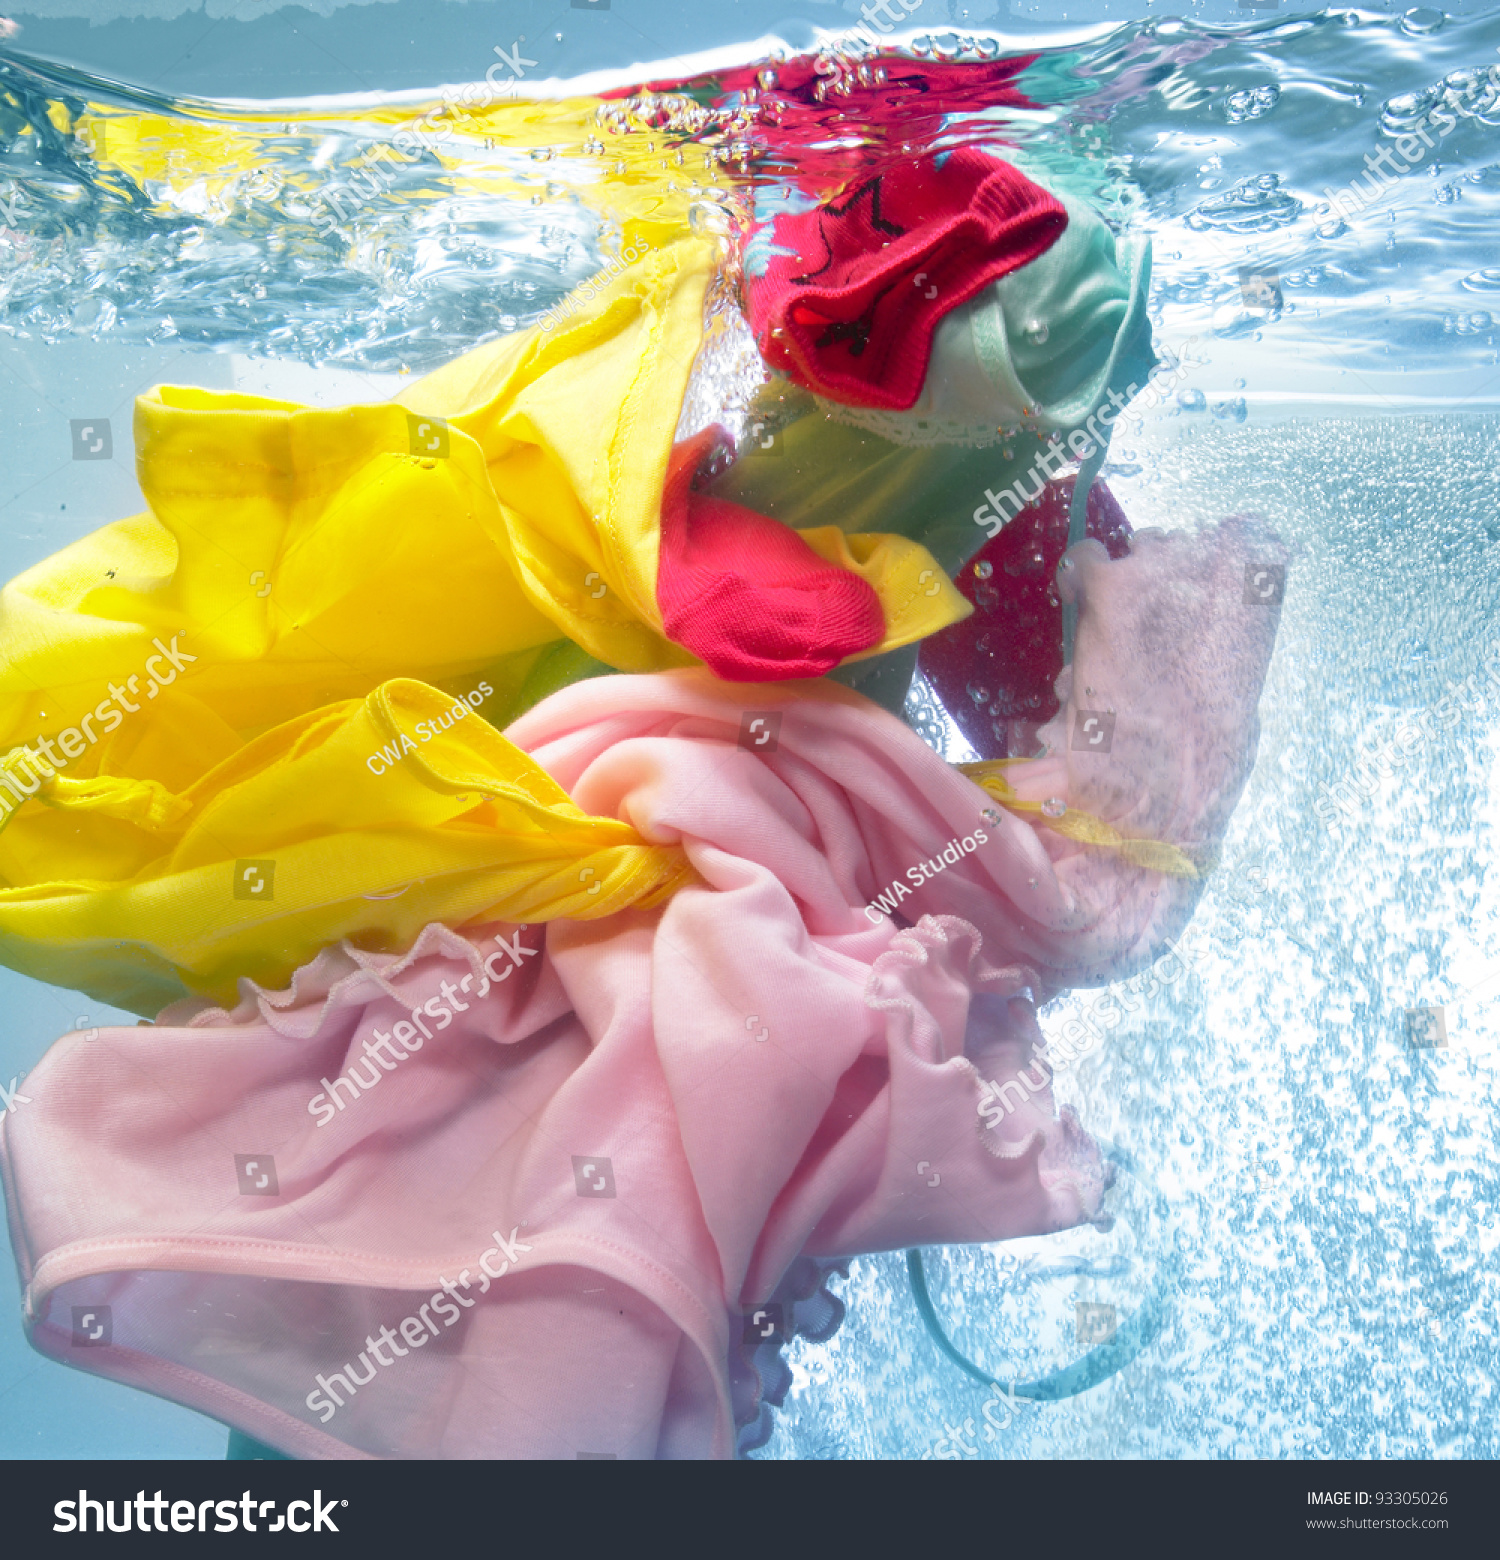 Colorful clothes in the washing machine stock photo 93305026 shutterstock - Protect clothes colors washing ...